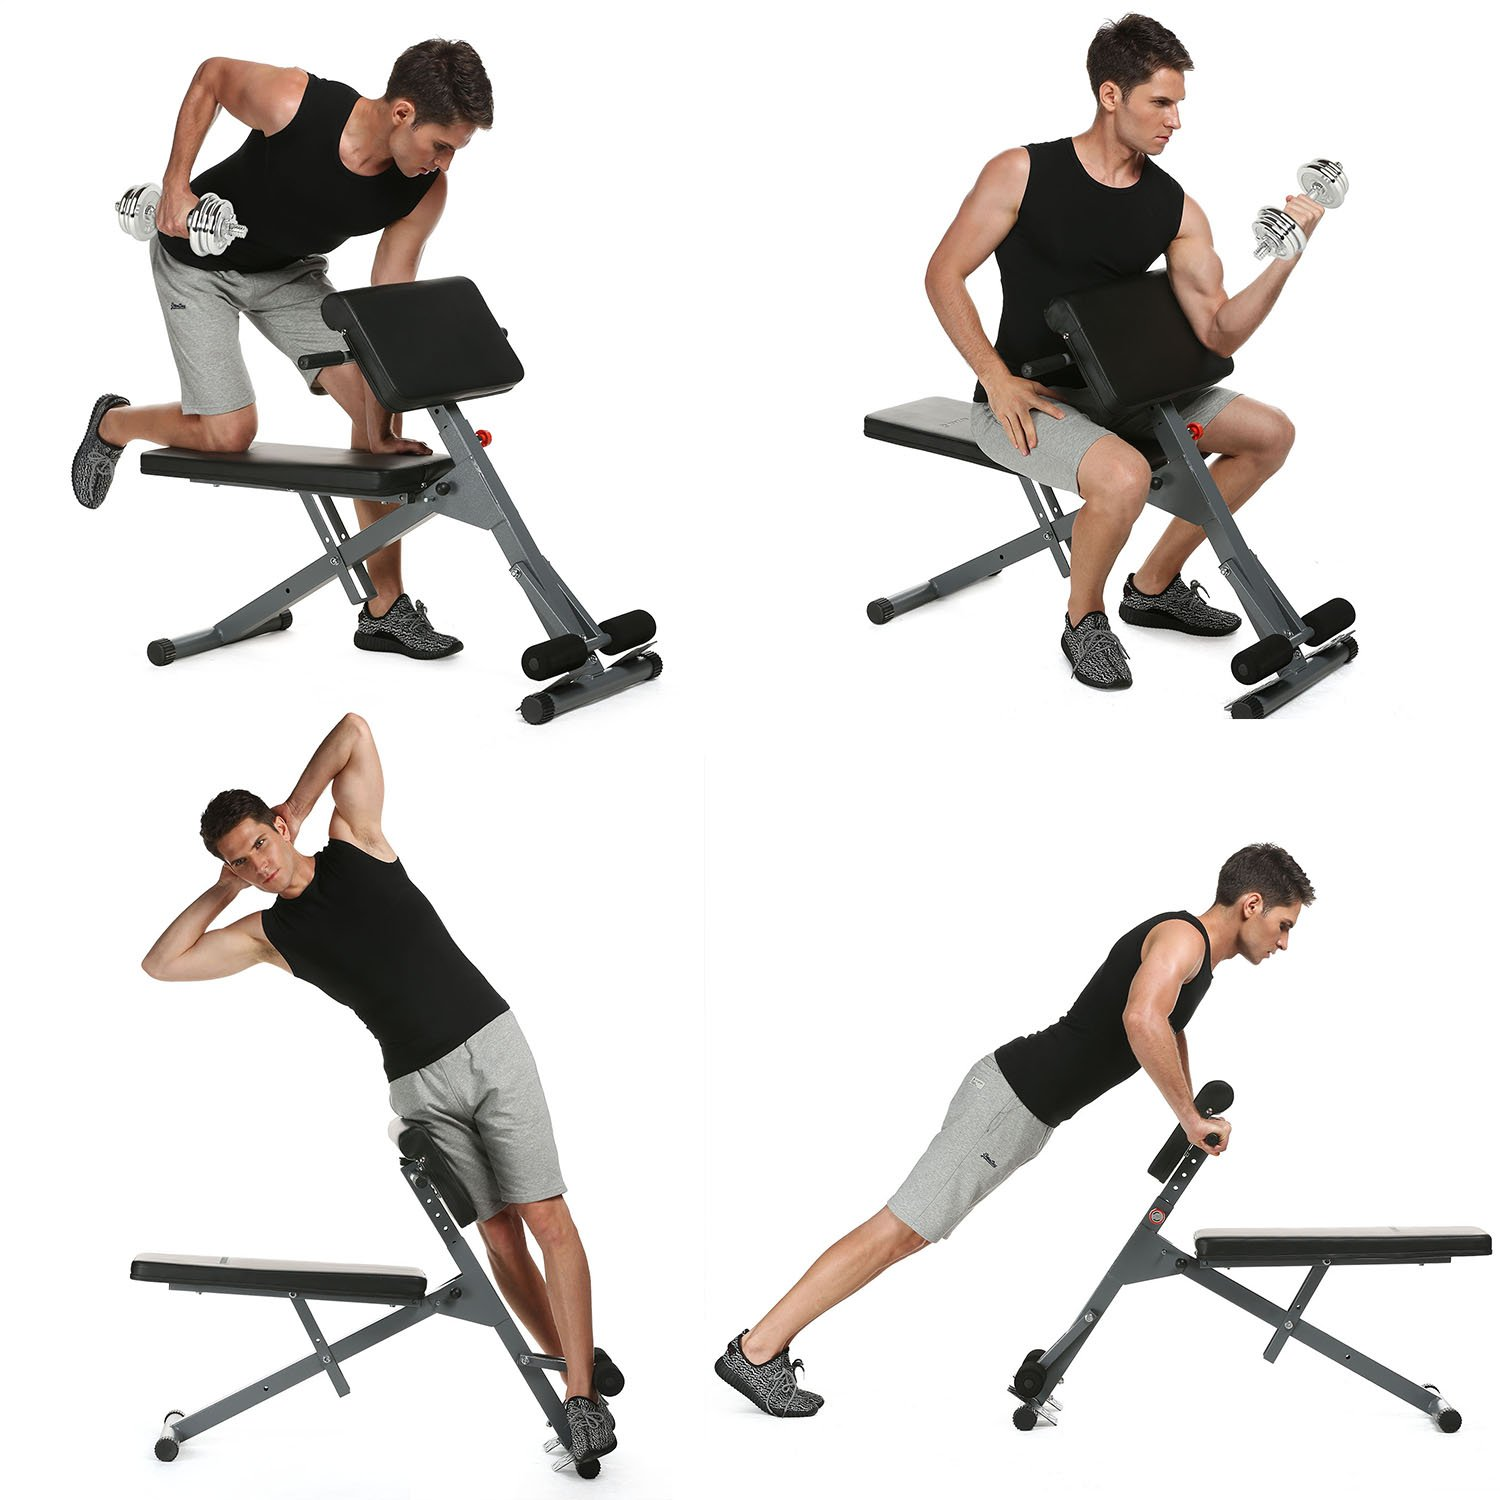 shaofu Adjustable Ab Bench Multi Roman Chair Incline Decline Sit Up Bench Abdominal Bench for Home Gym Office US Stock